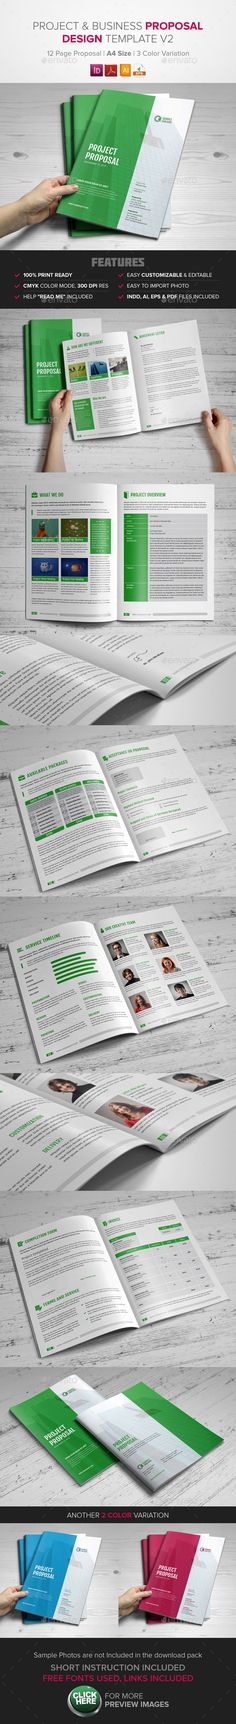 For new handbook 30+ Page Proposal Template - w/ Contract  Invoice